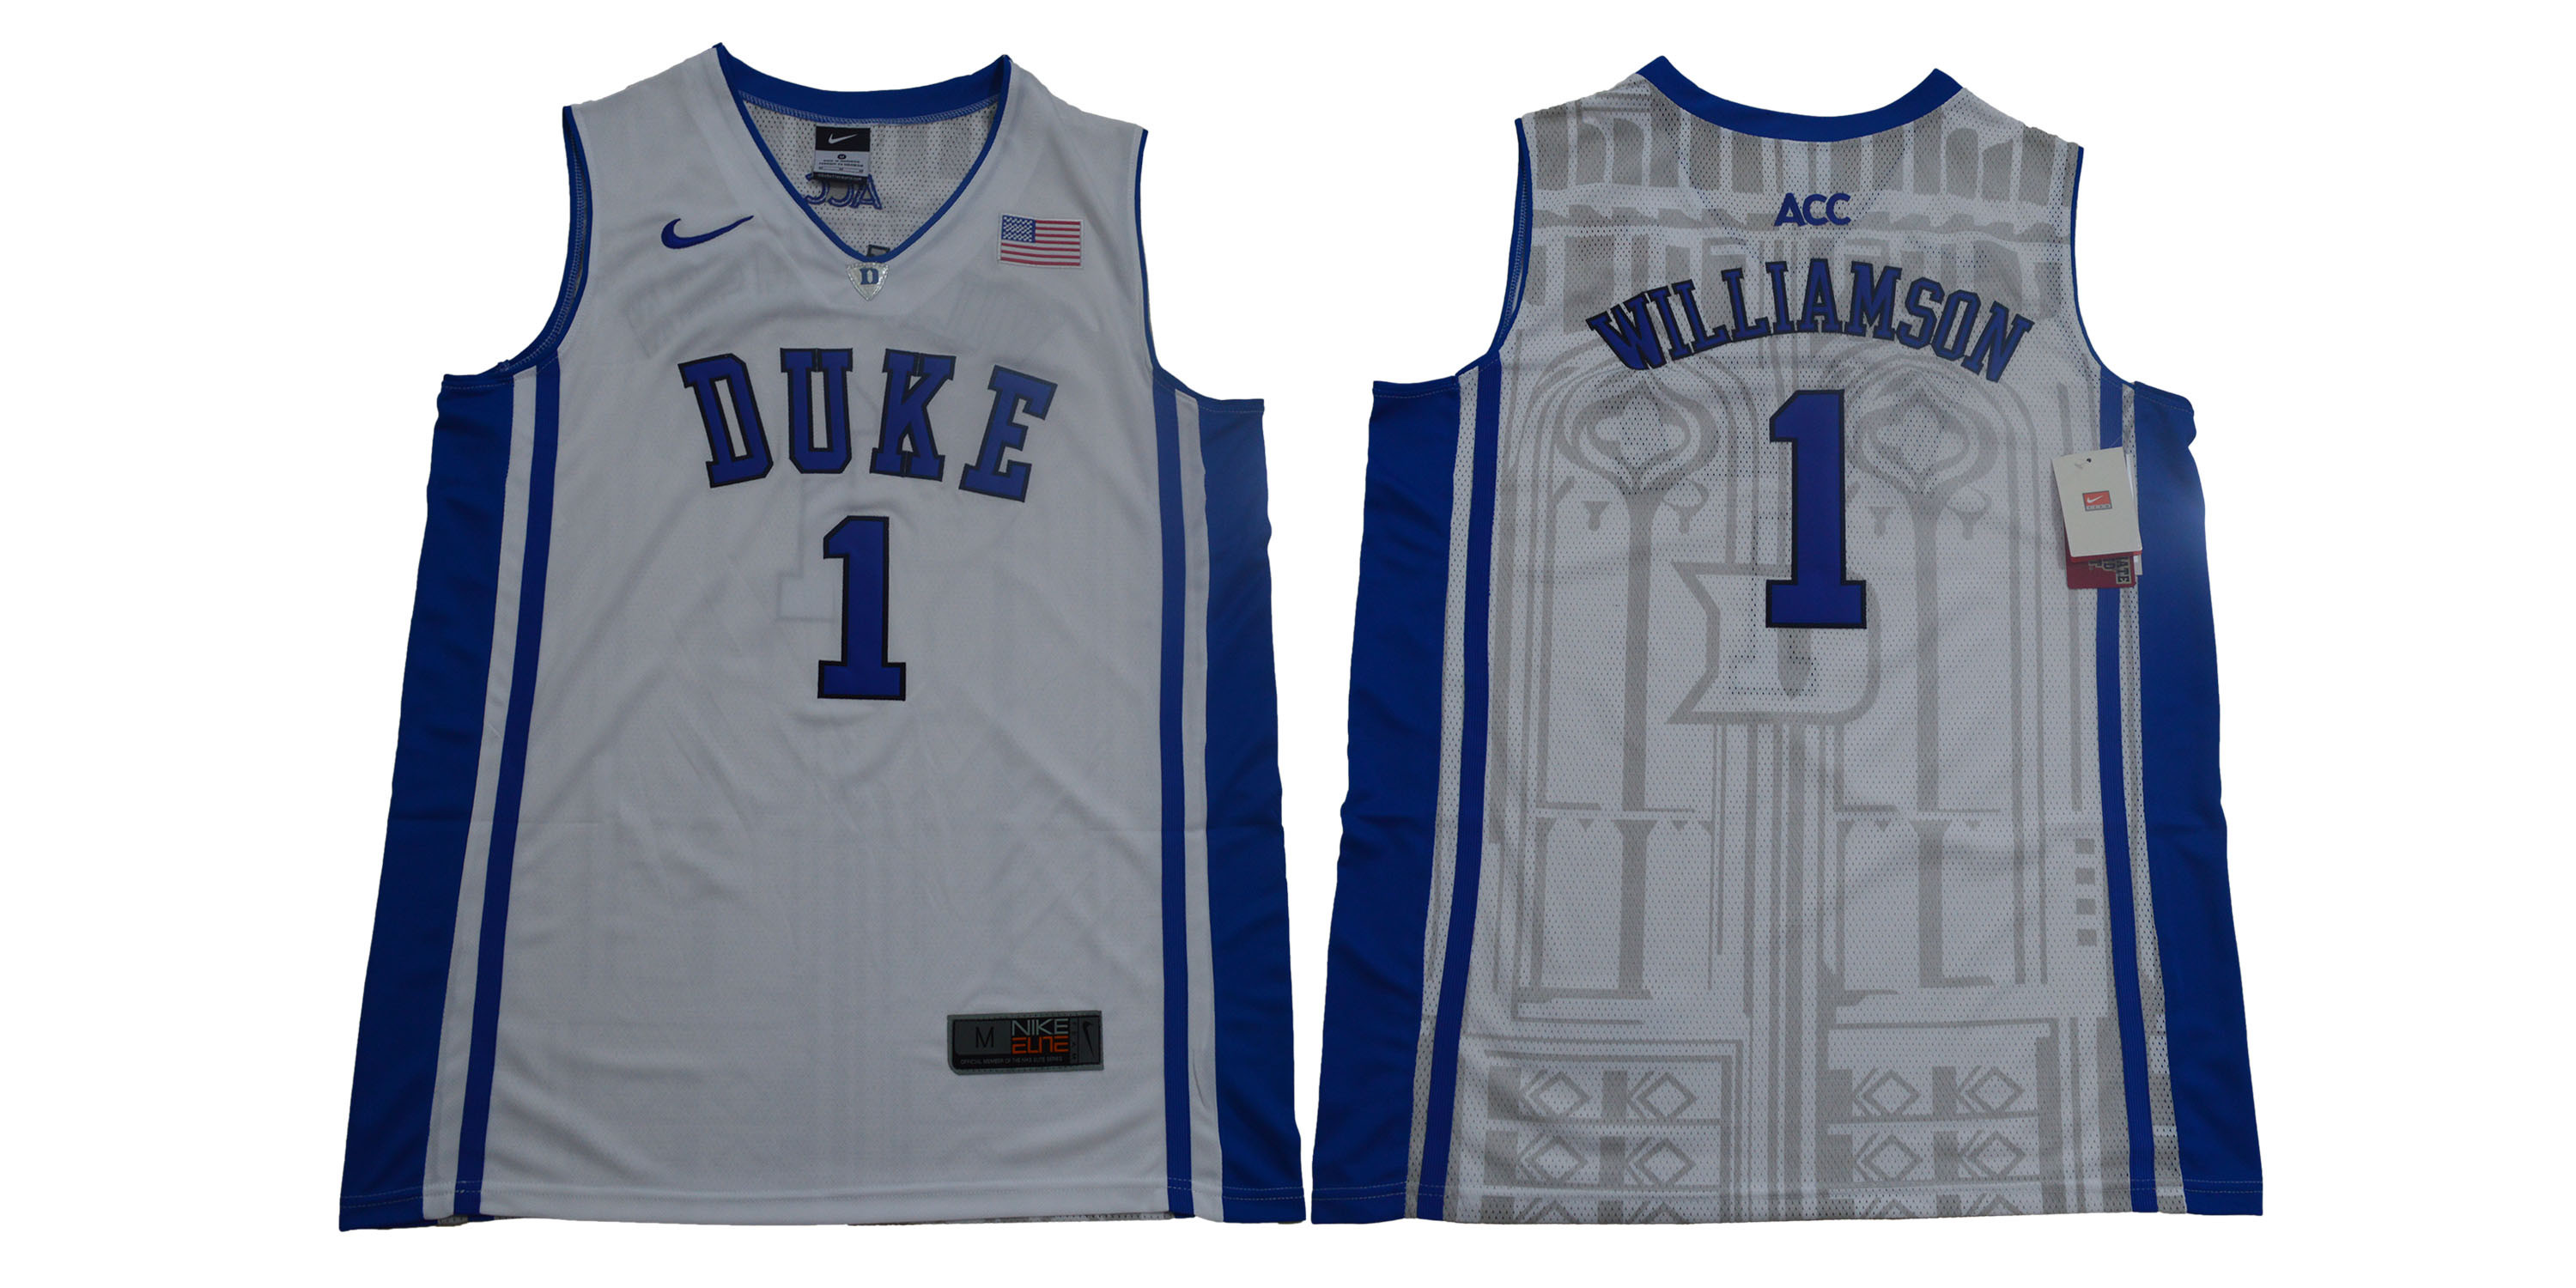 72c1157e67a6 Duke Blue Devils 1 Zion Williamson White Nike Elite College Basketball  Jersey